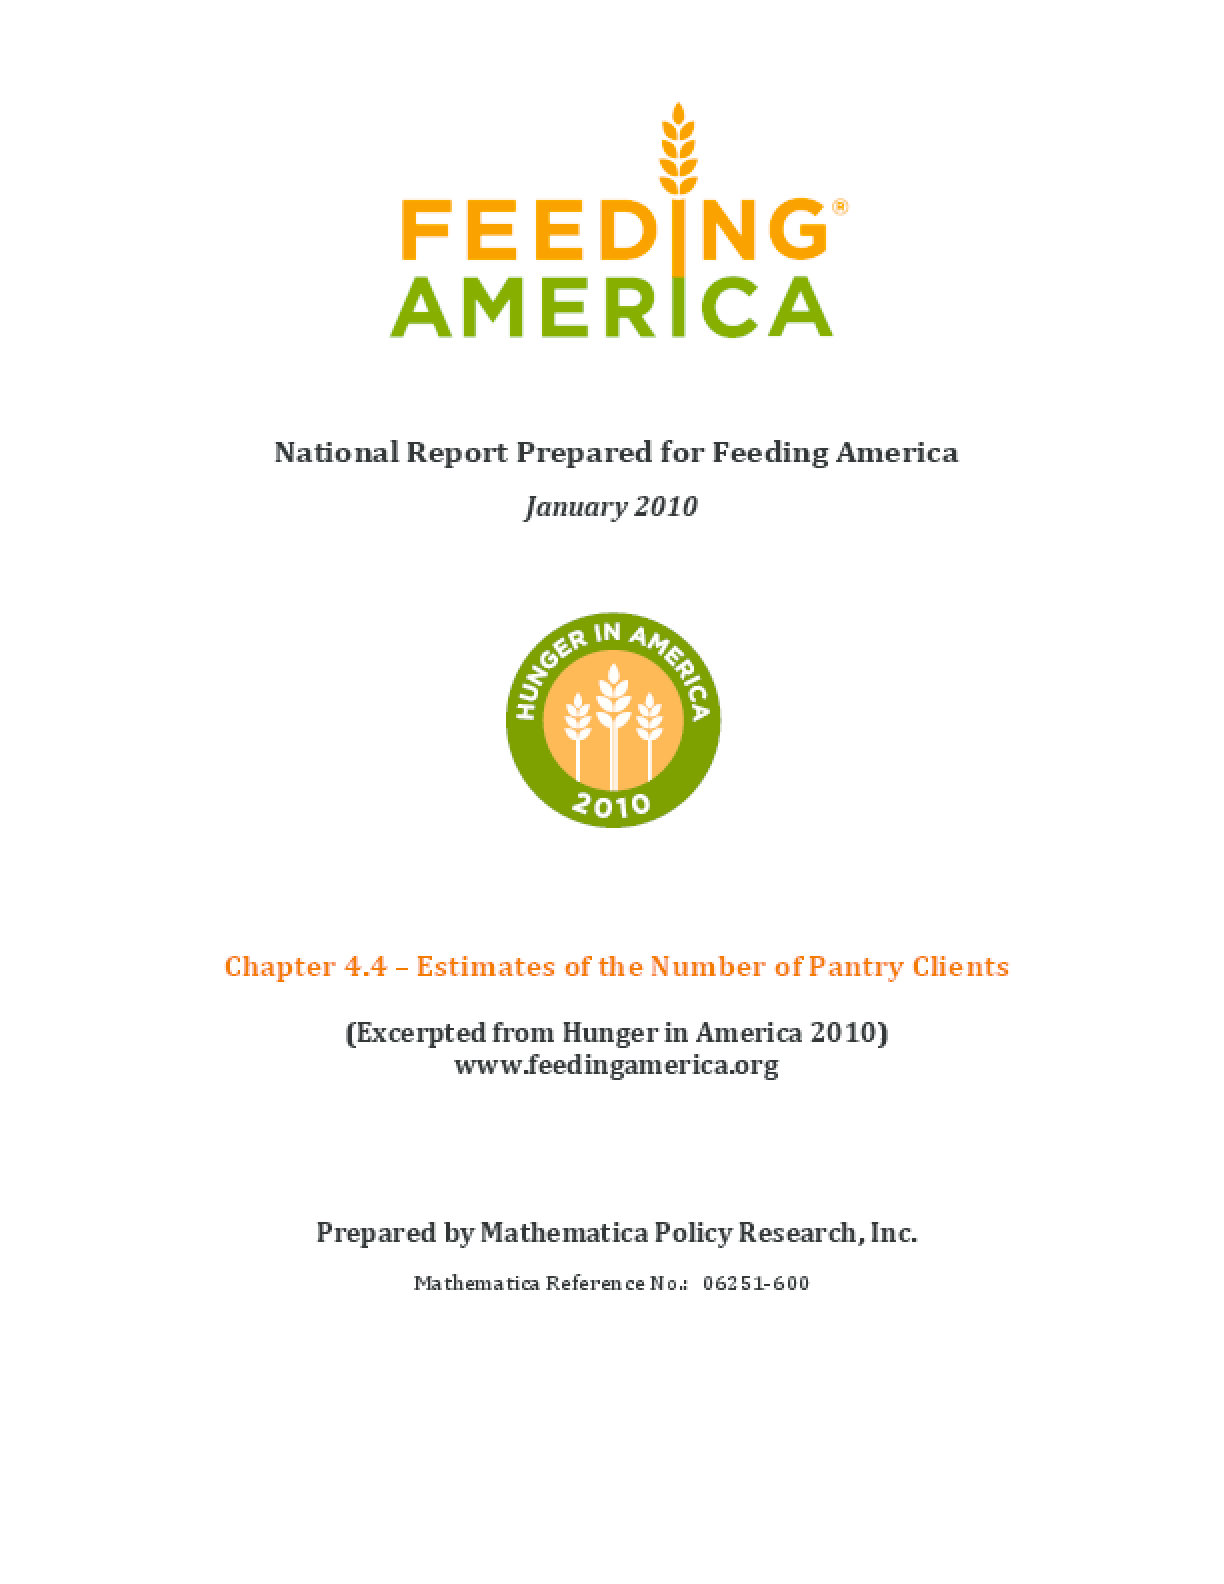 Estimates of the Number of Clients Served by Food Pantries in the Feeding America Network